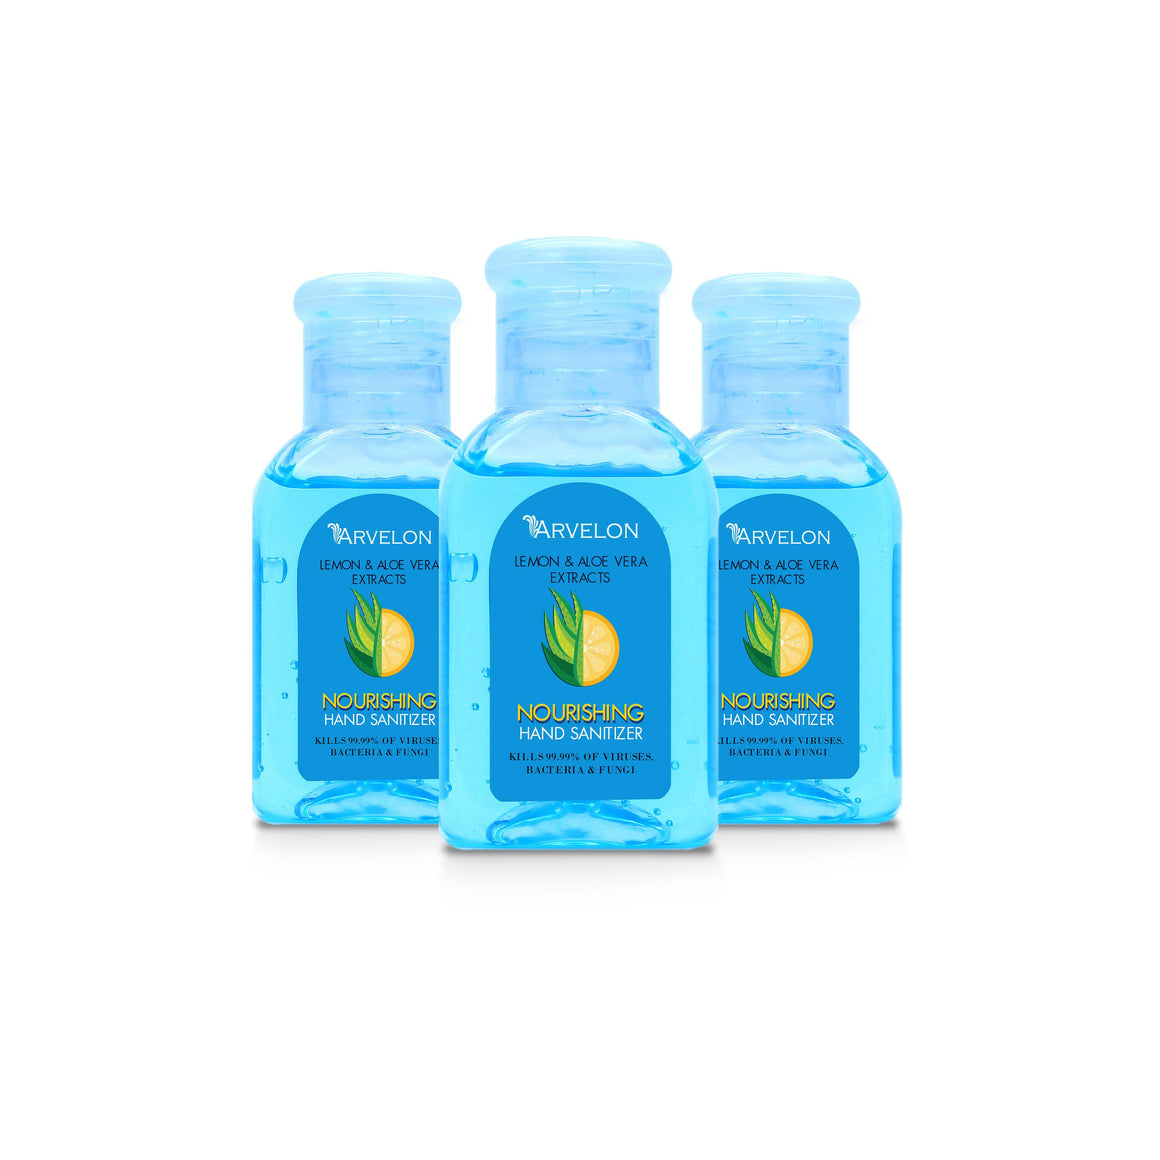 Nourishing Sanitizer Saver Set for x3-Arvelon